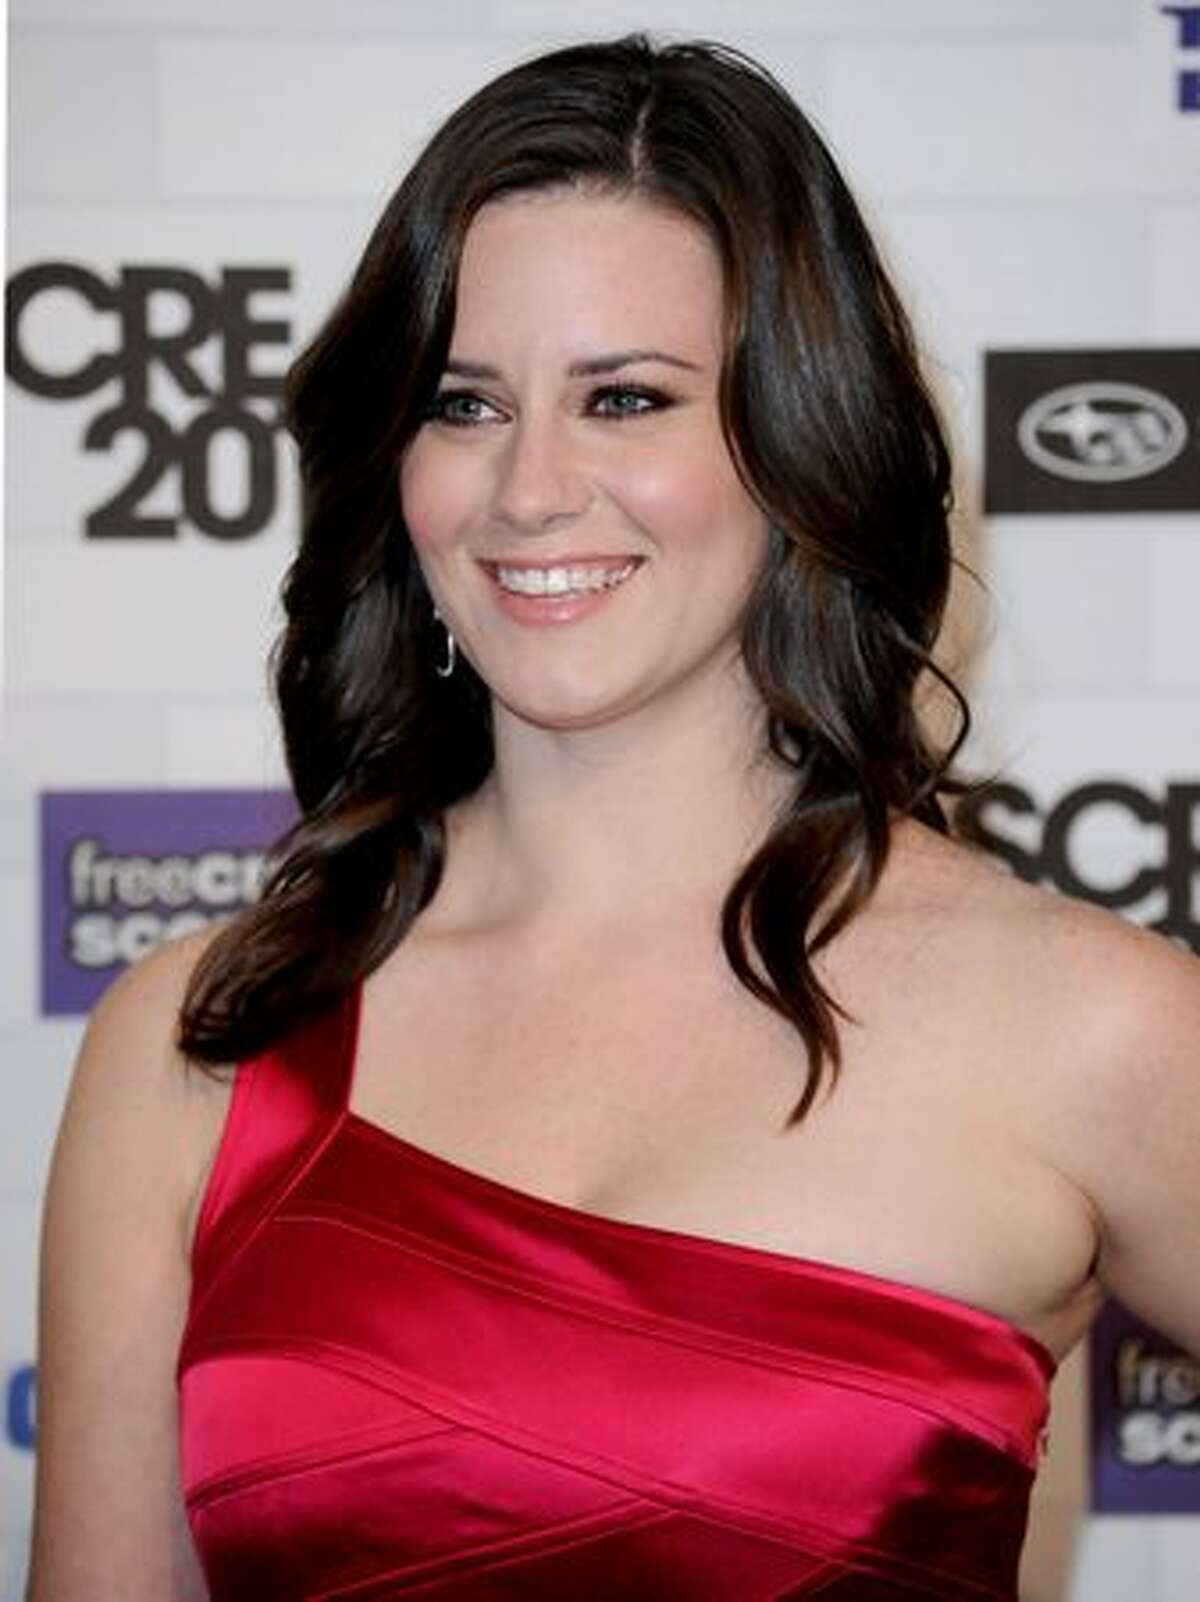 """Actress Katie Featherston arrives at Spike TV's """"Scream 2010"""" at The Greek Theatre on October 16, 2010 in Los Angeles, California."""